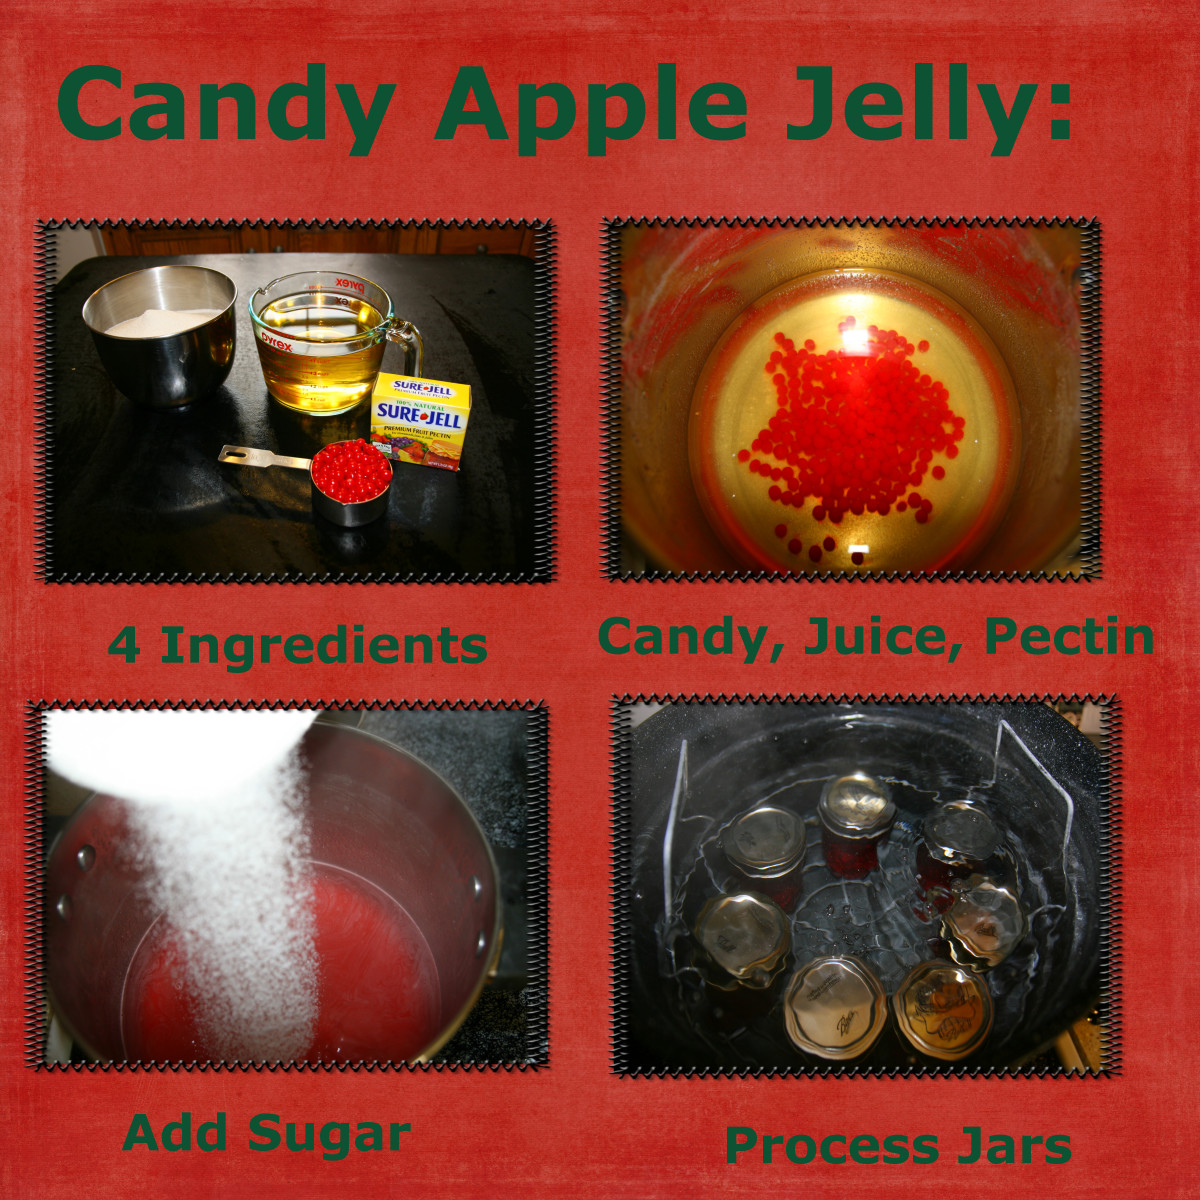 Candy Apple Jelly is very simple to make, and requires only four ingredients (click to enlarge).